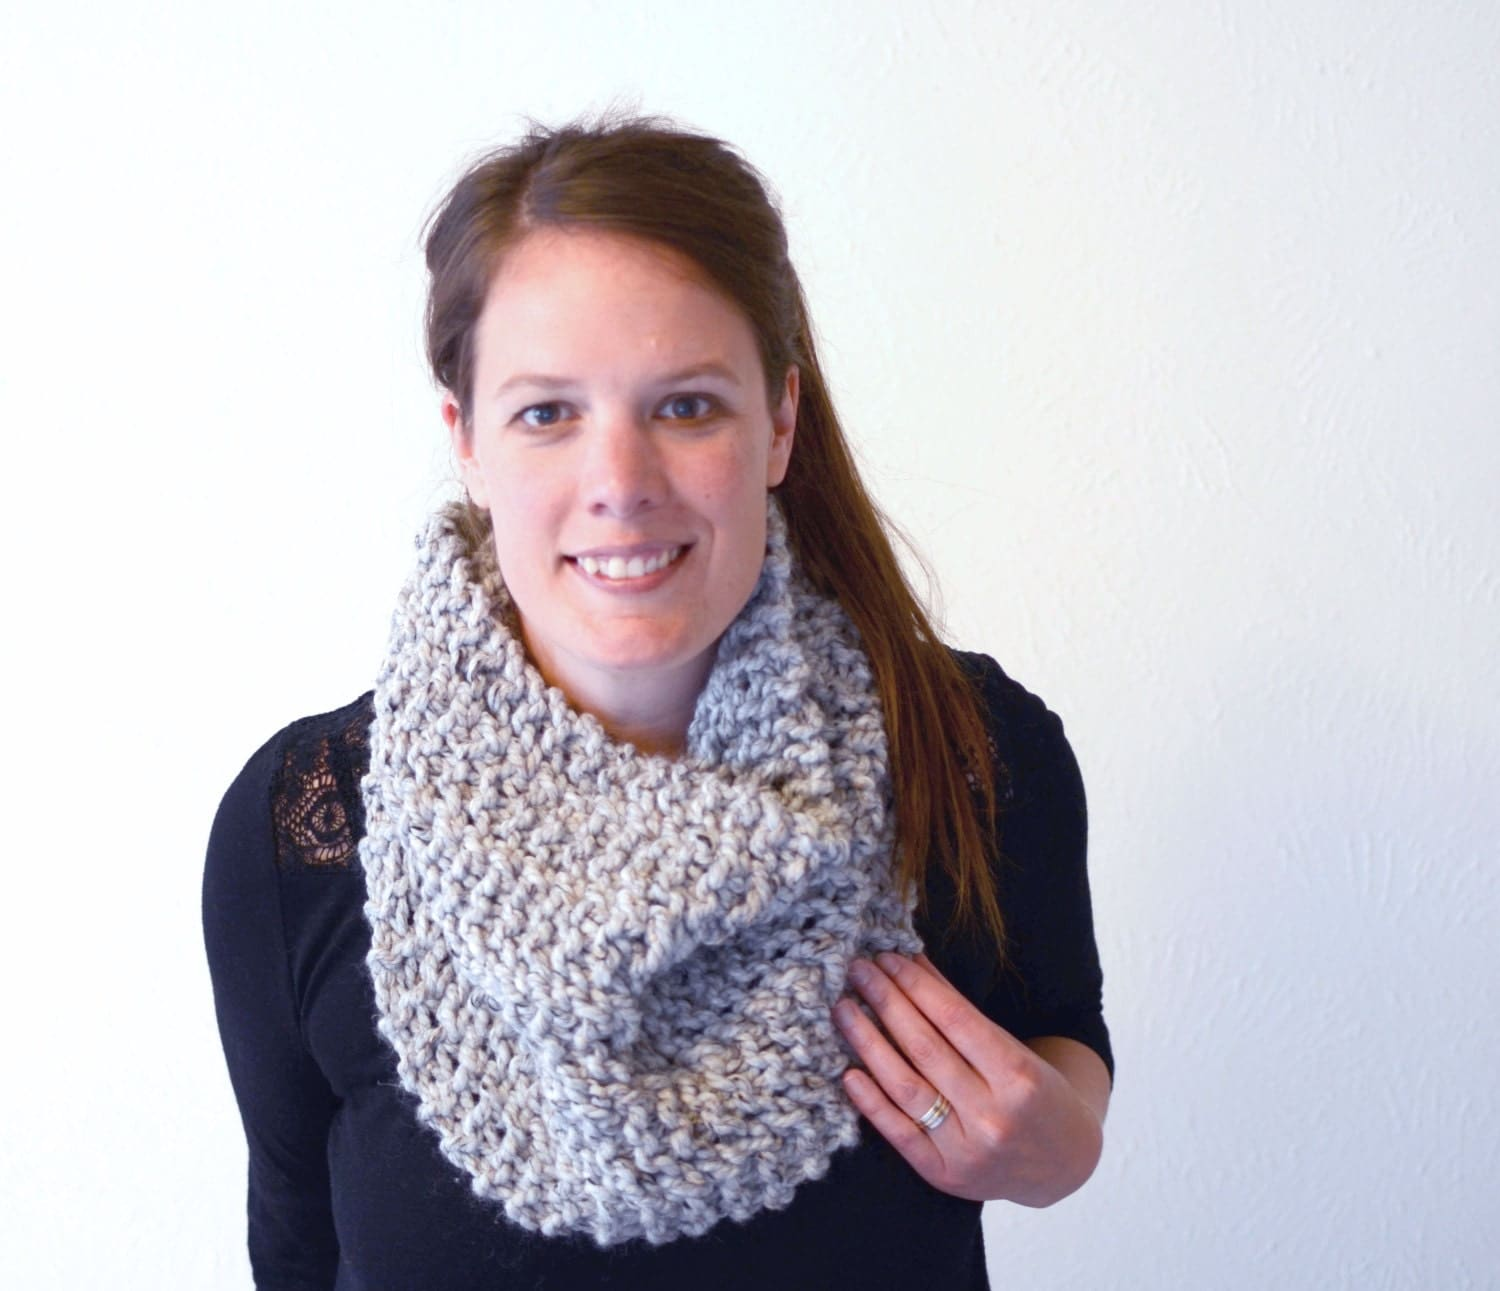 Knitting Cowl Scarf : Chunky knit scarf cowl